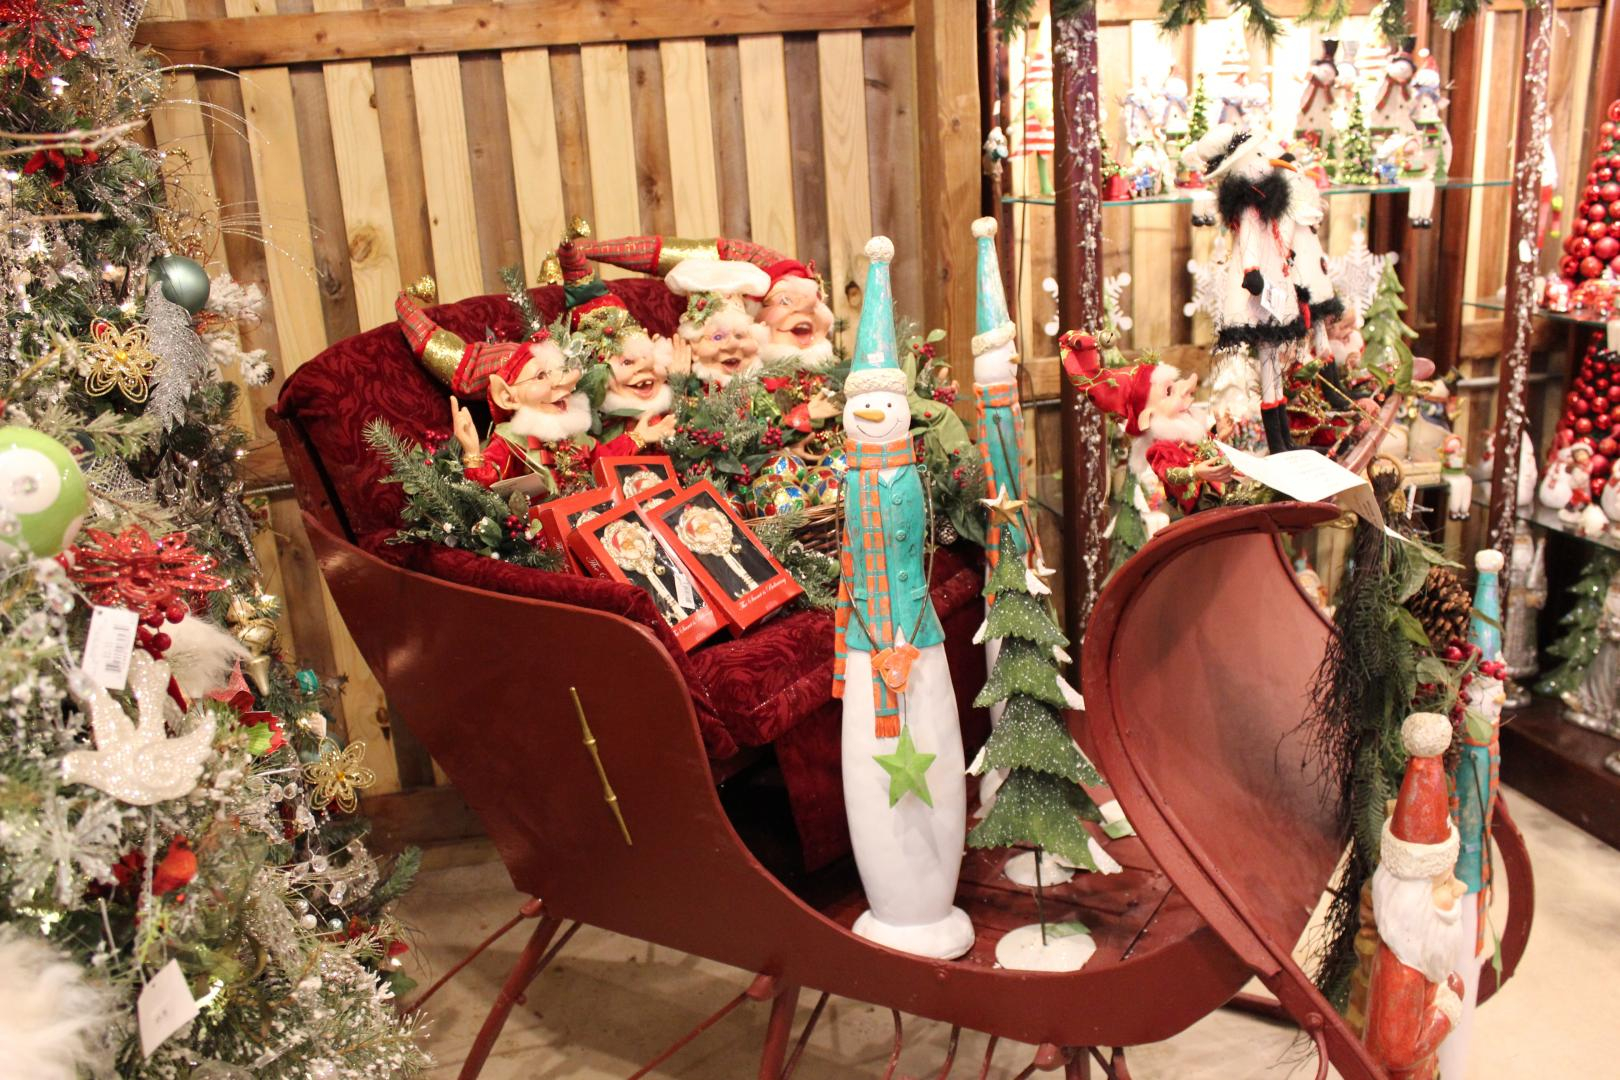 Christmas Ranch Morrow Ohio.The Christmas Ranch Warren County Ohio S Best Vacation